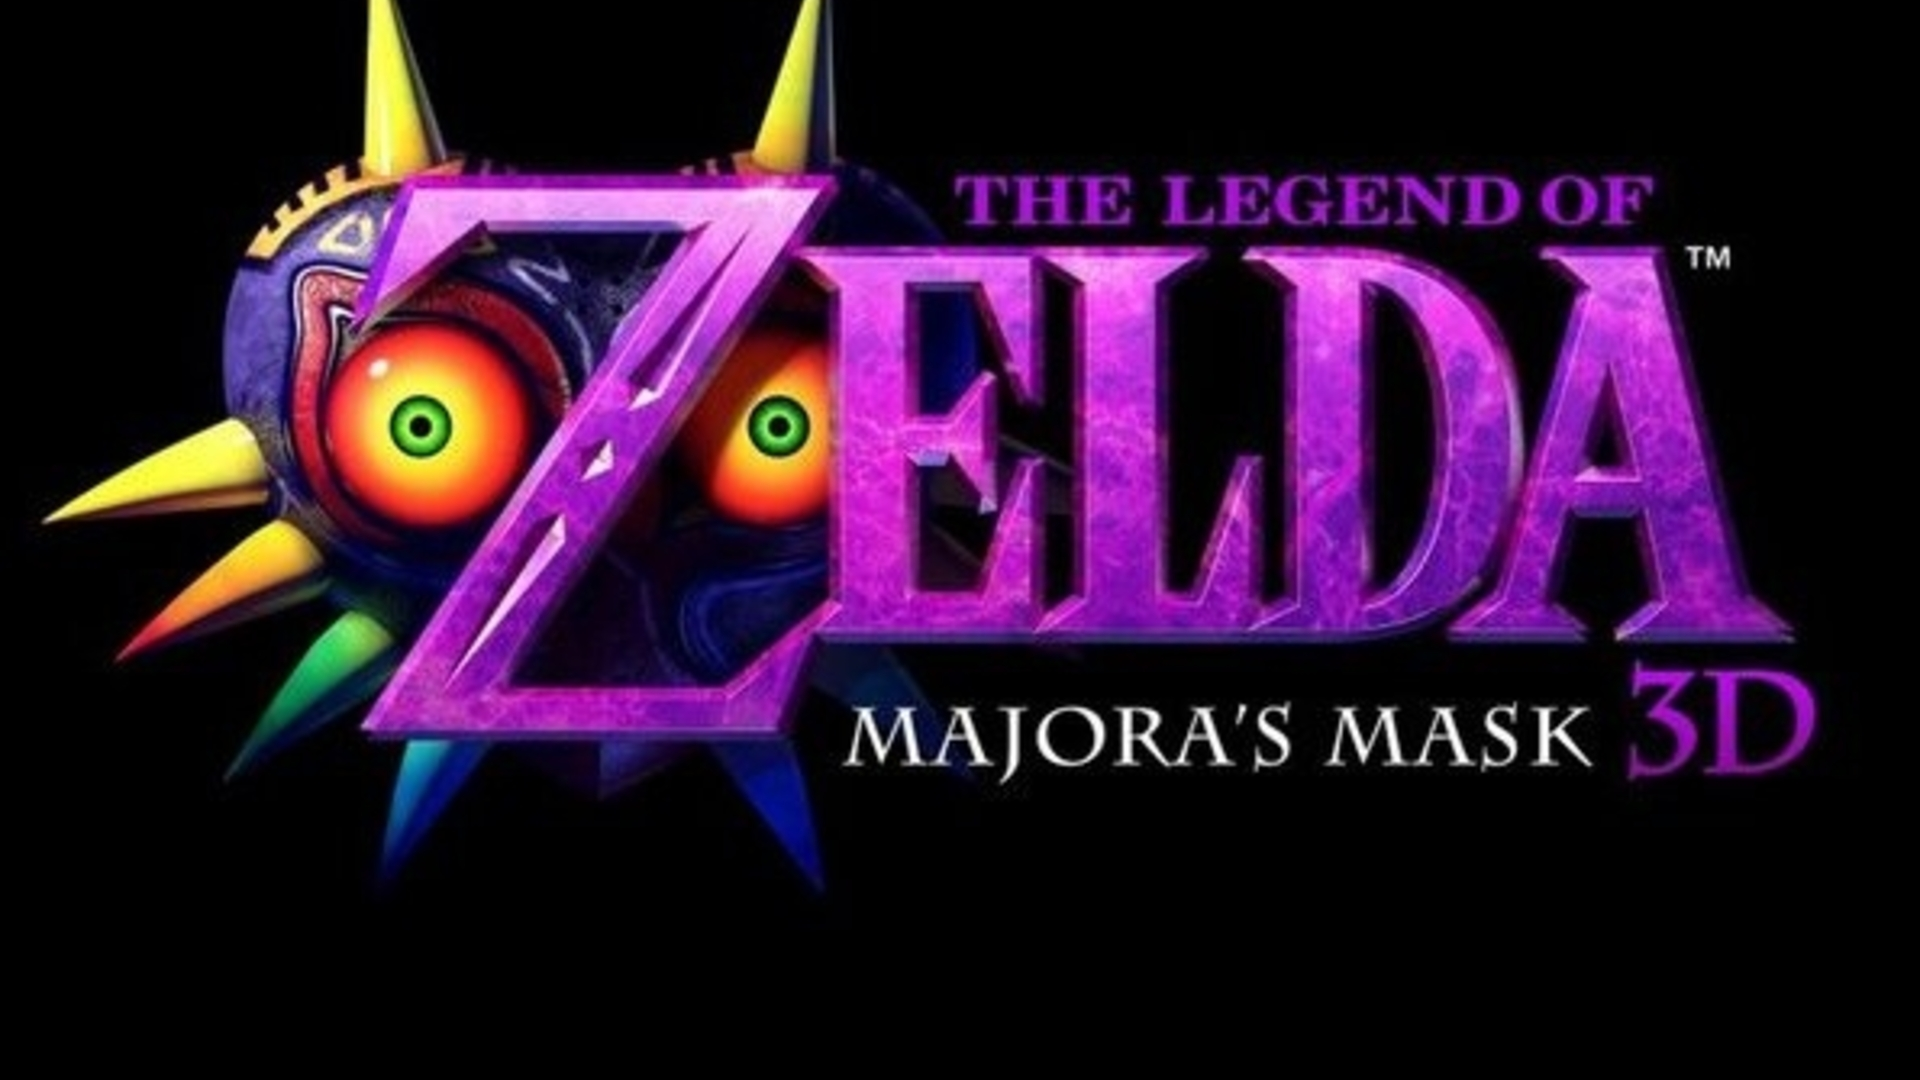 Majora's Mask is getting remade on 3DS... finally